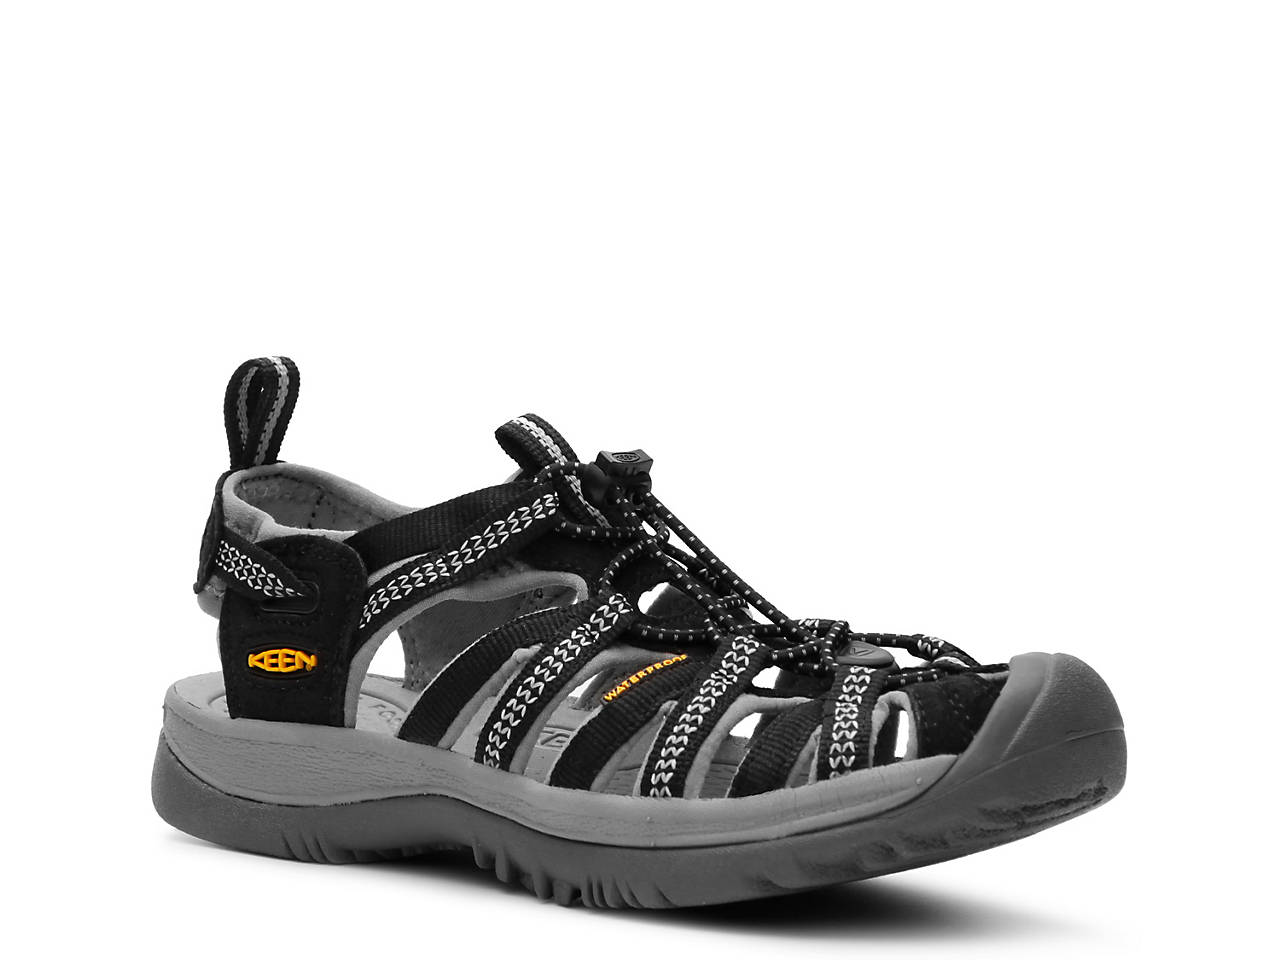 6a13e6de8c73 Keen Whisper Sport Sandal Women s Shoes